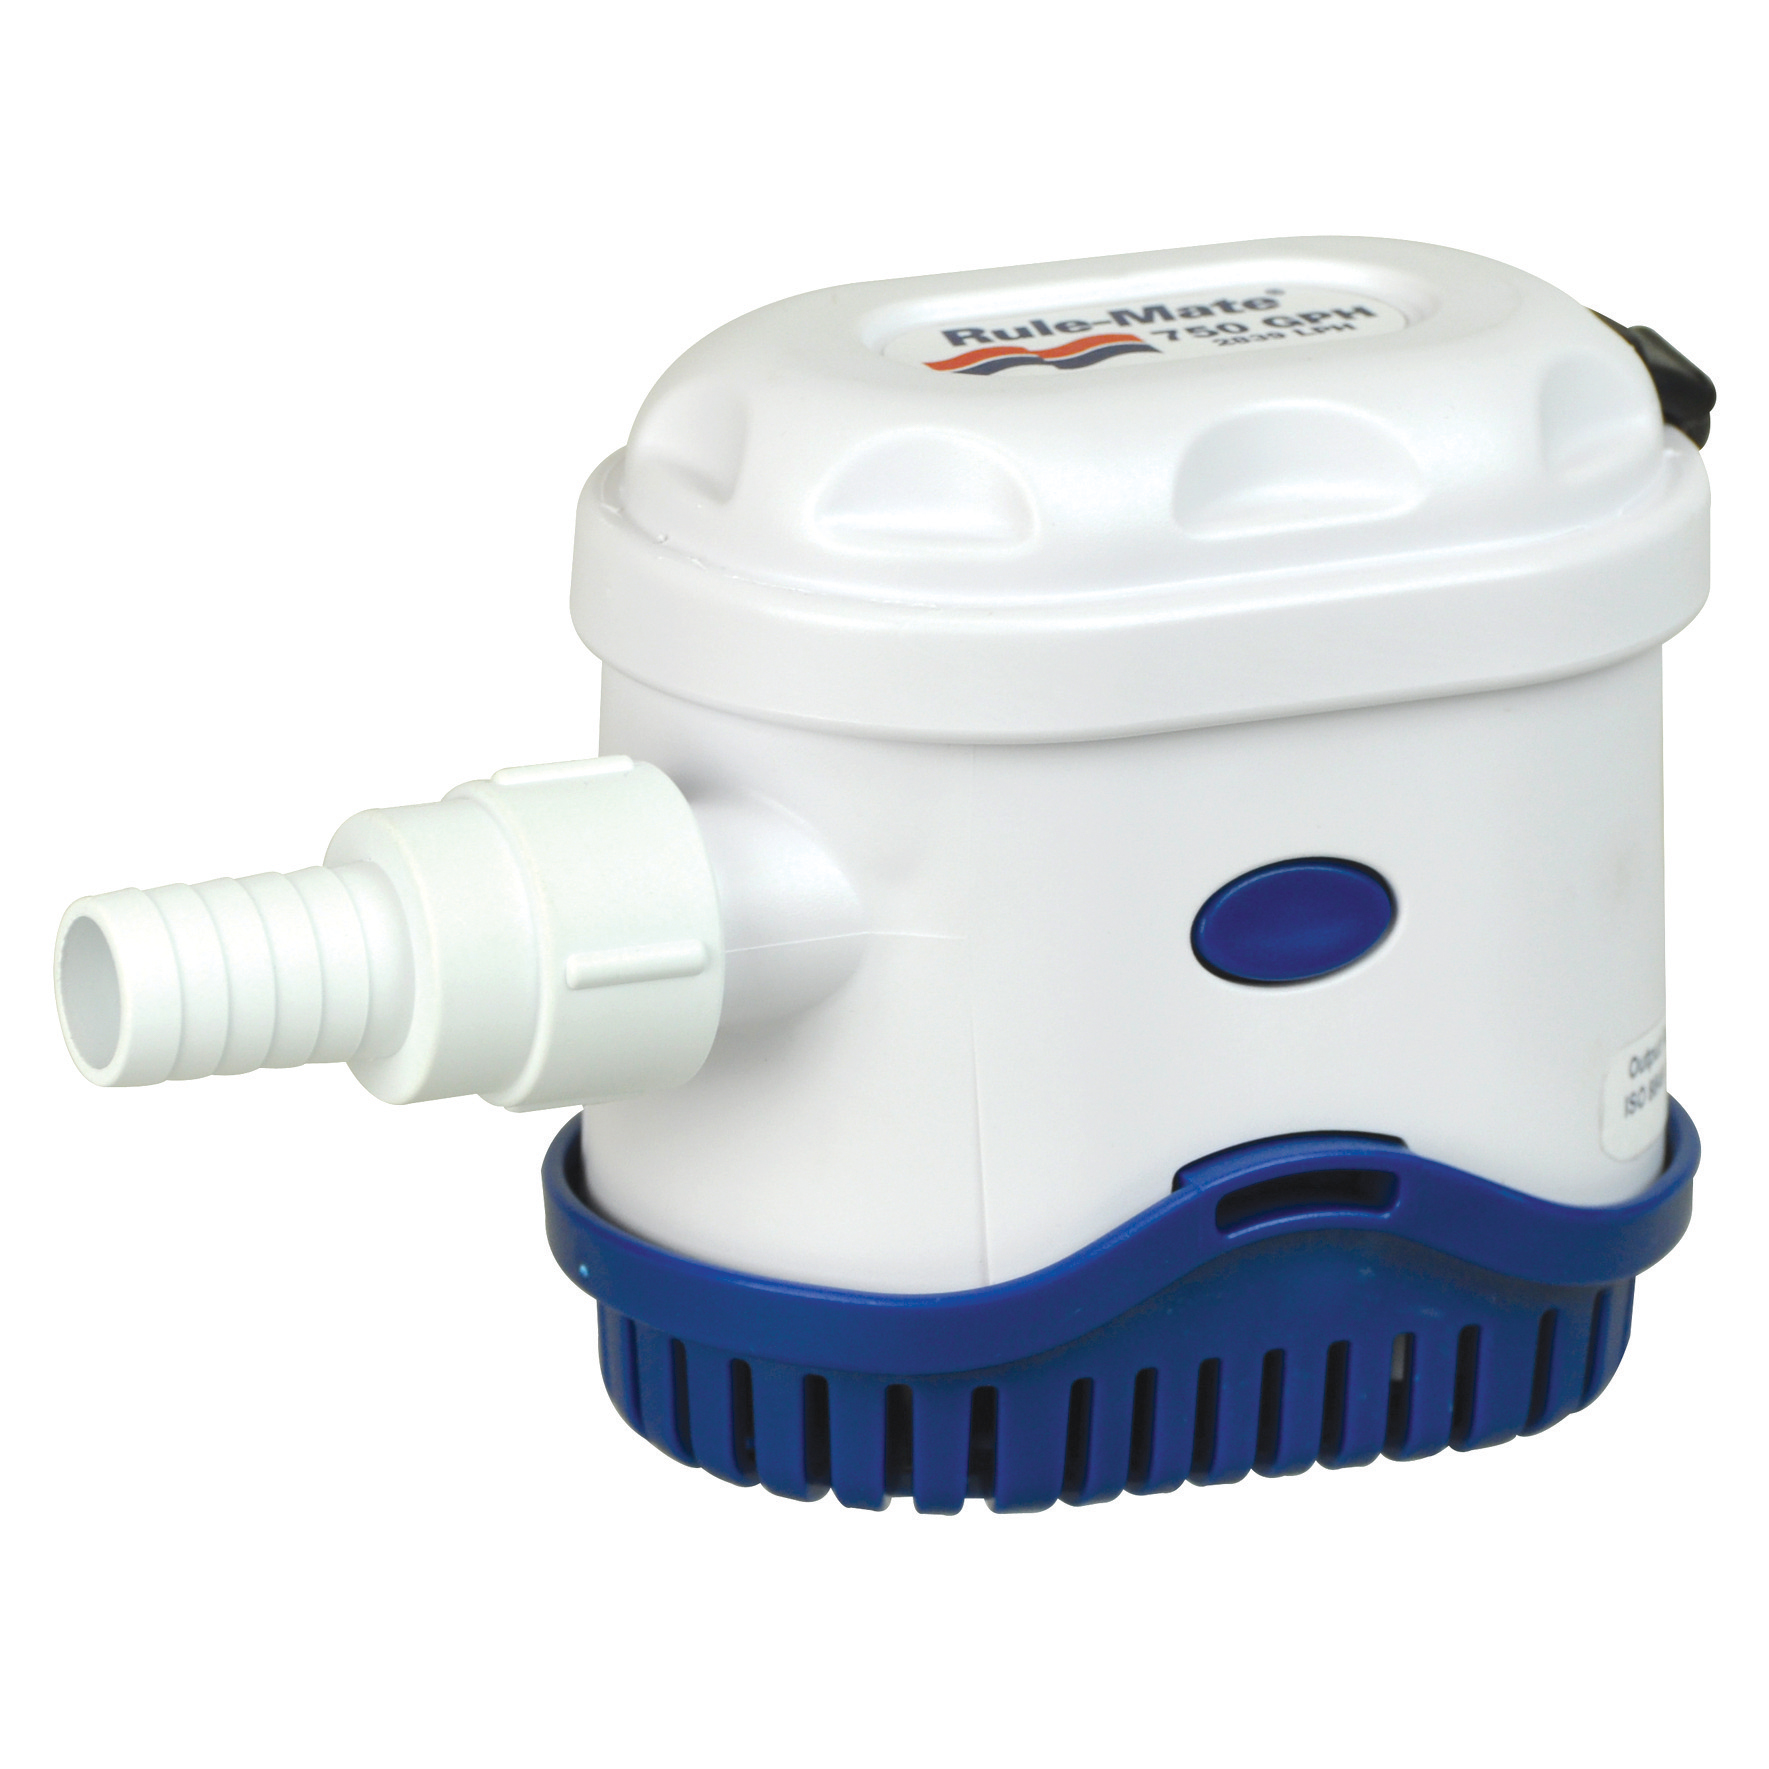 Rule-Mate Automatic Bilge Pump RM750 - 750 GPH photo